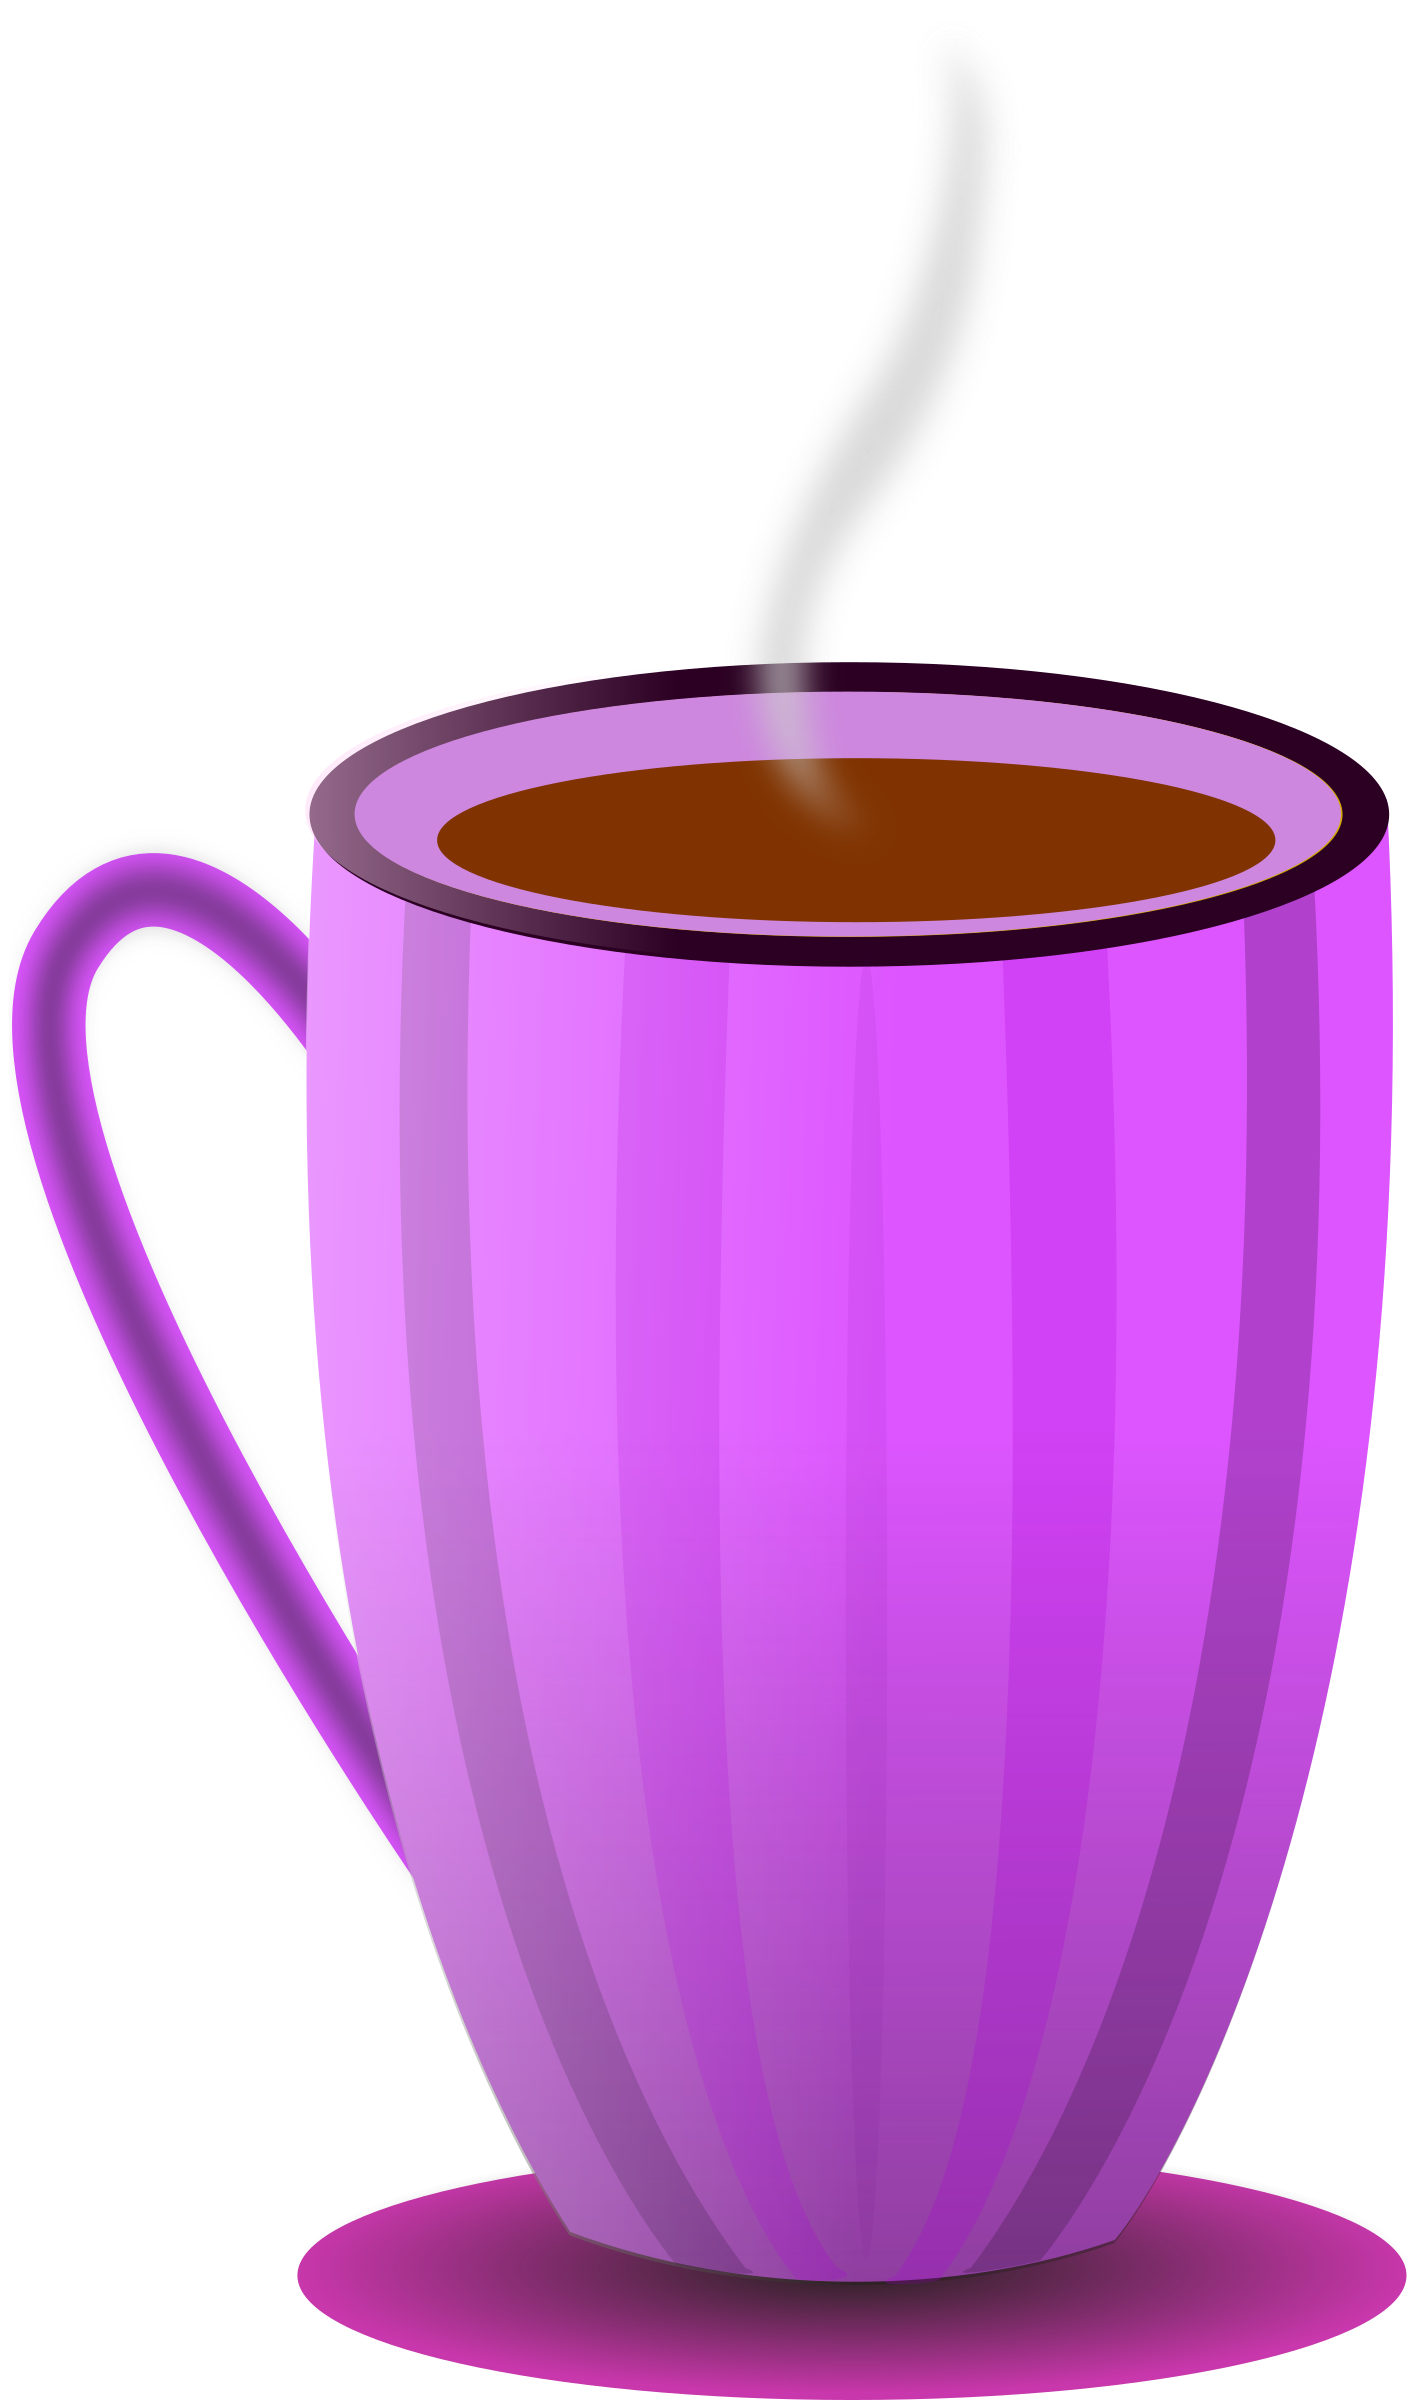 Big image png. Clipart coffee coffee cup